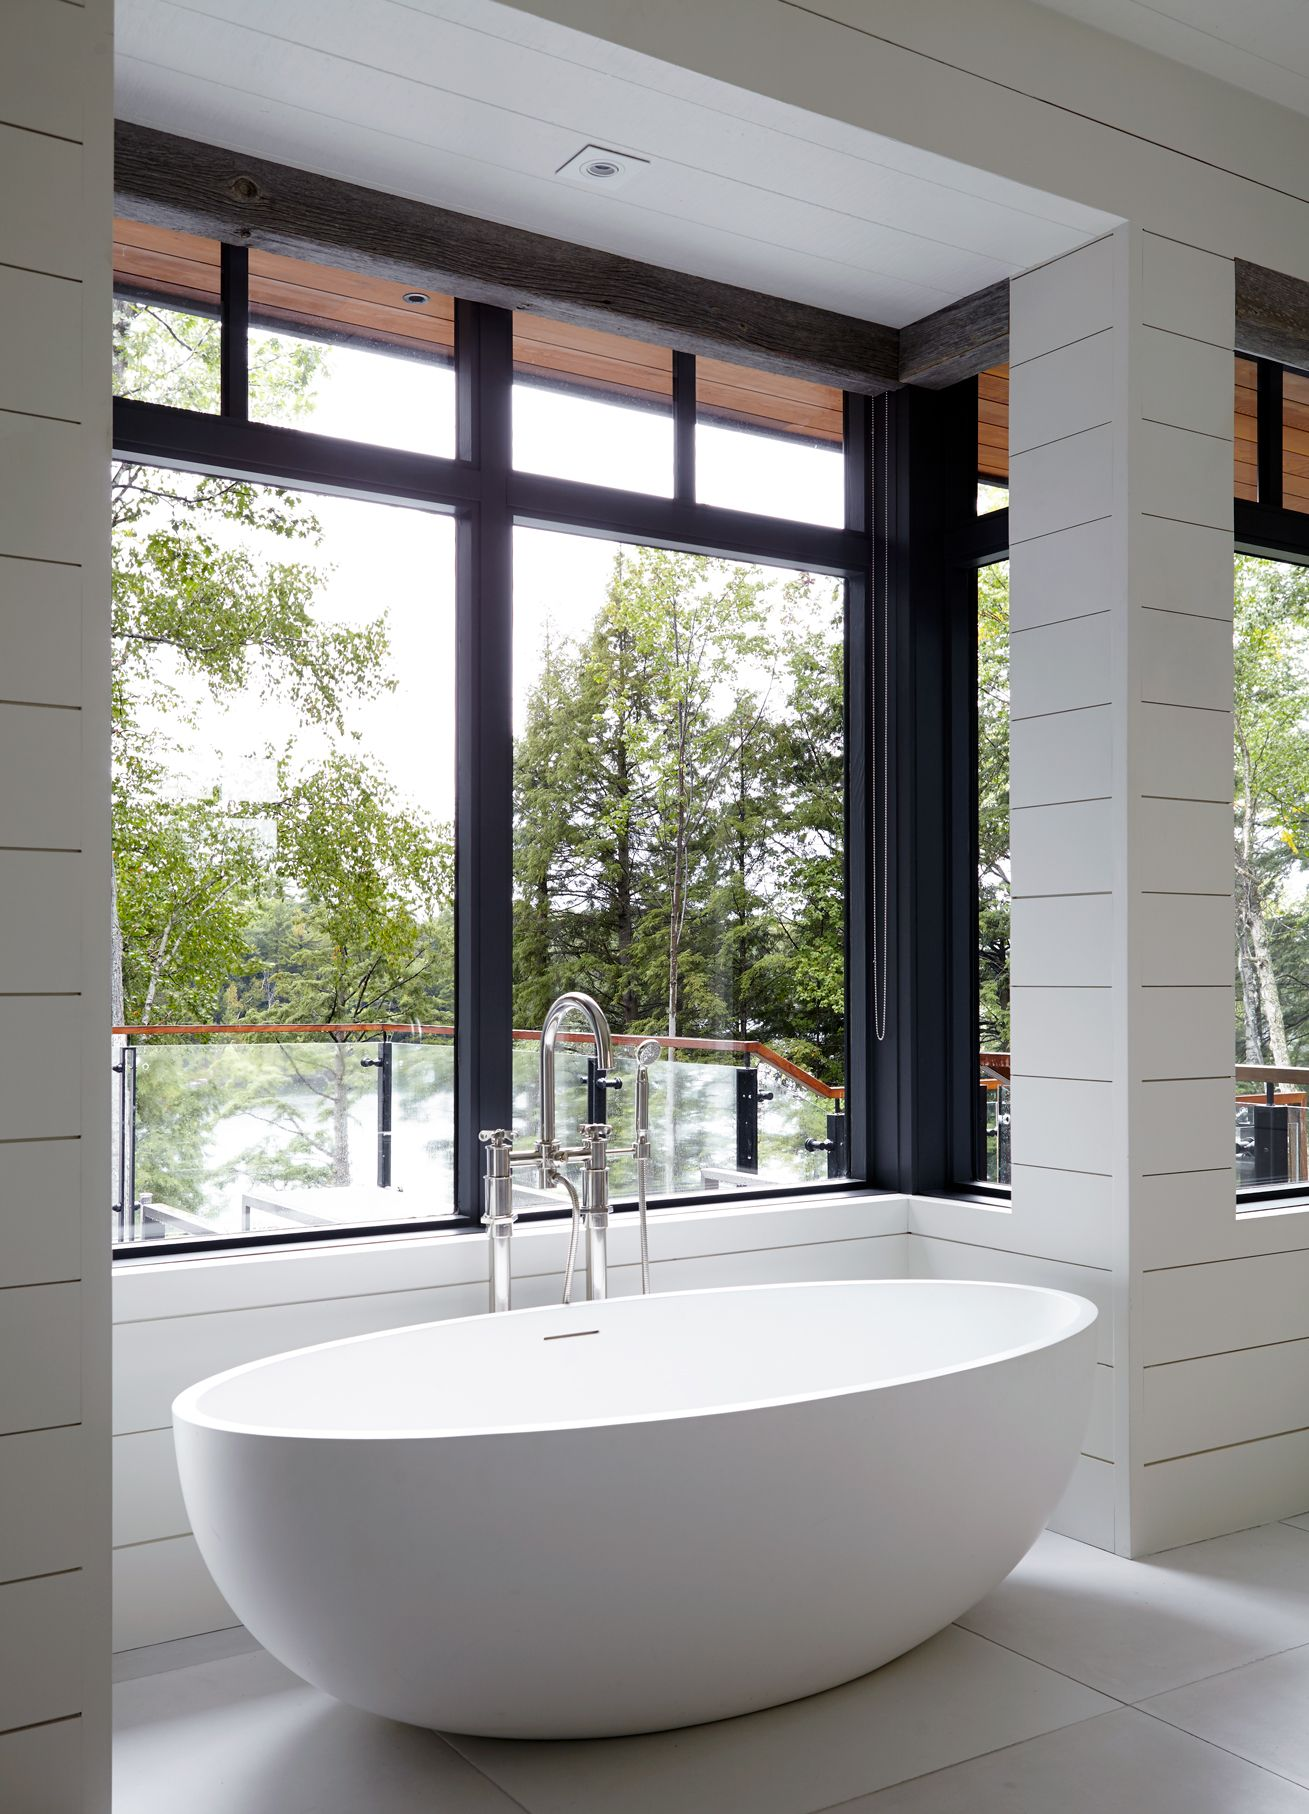 Relax in this beautiful stand alone tub //Architects: +VG Ventin ...